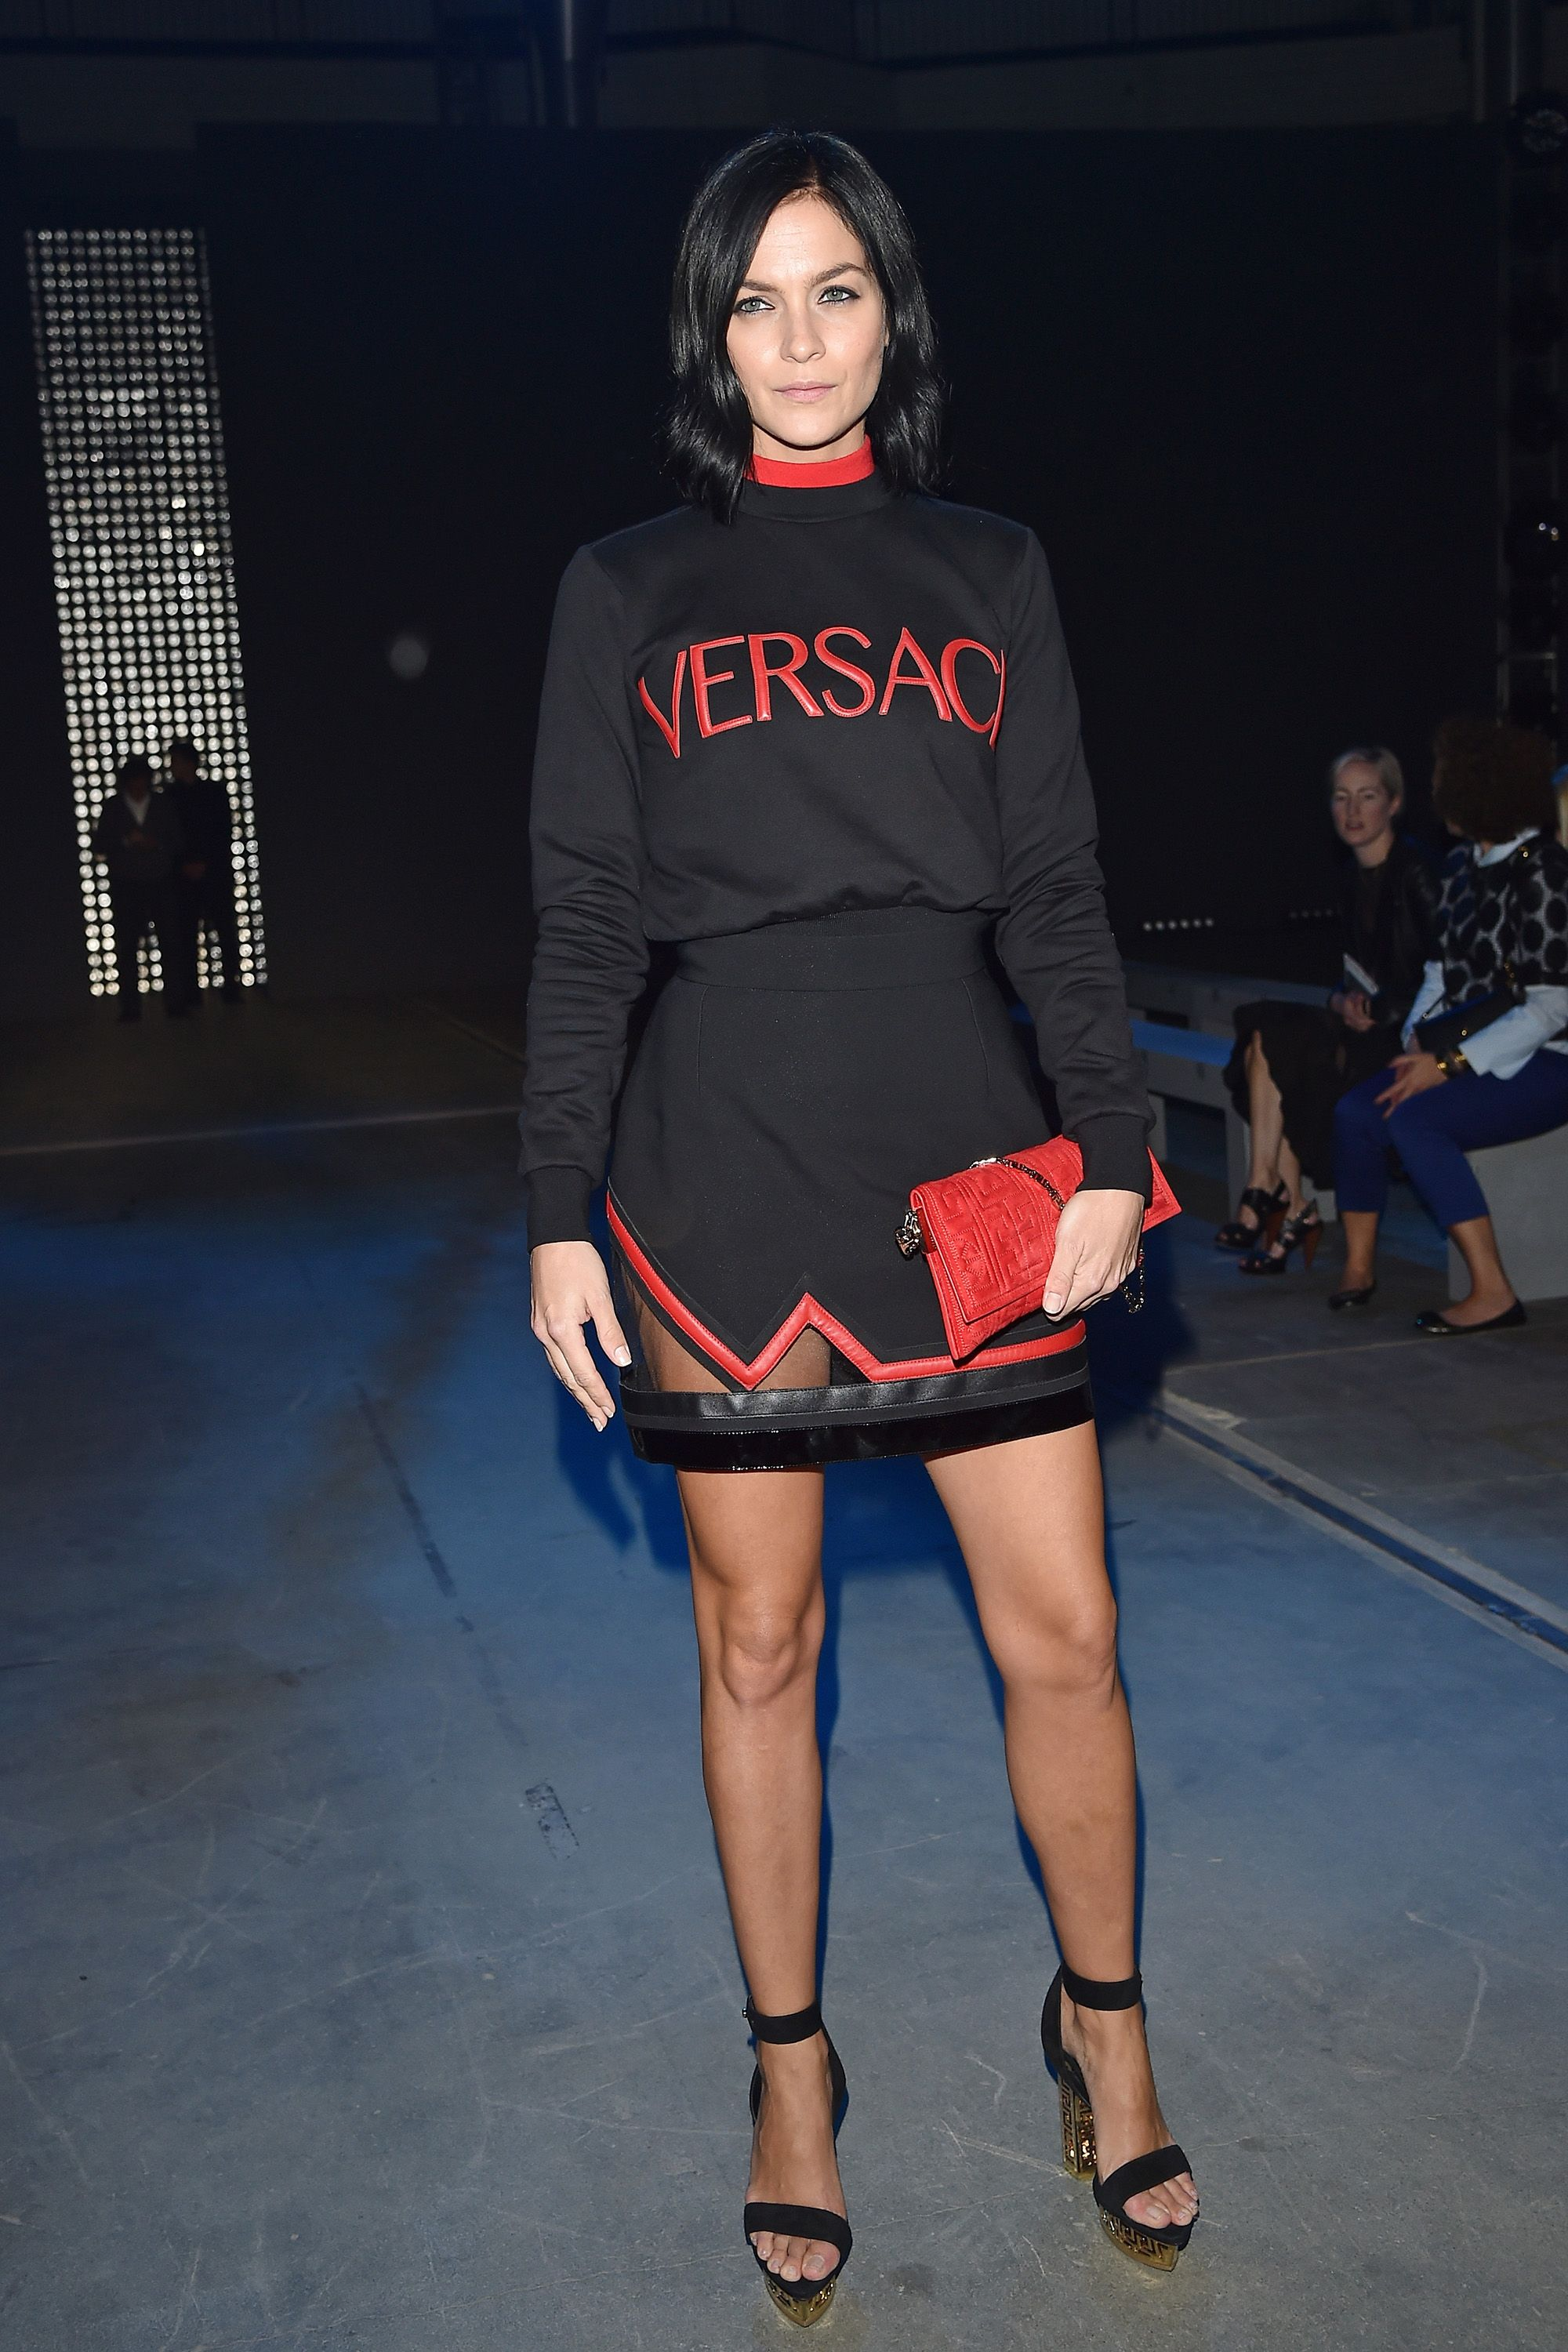 <p><strong>What:</strong> Versace</p><p><strong>Where:</strong> Versace Spring 2016 Show</p><p><strong>Why: </strong>Lezark's ensemble reminds us that the designer logo is back in a big way. </p>